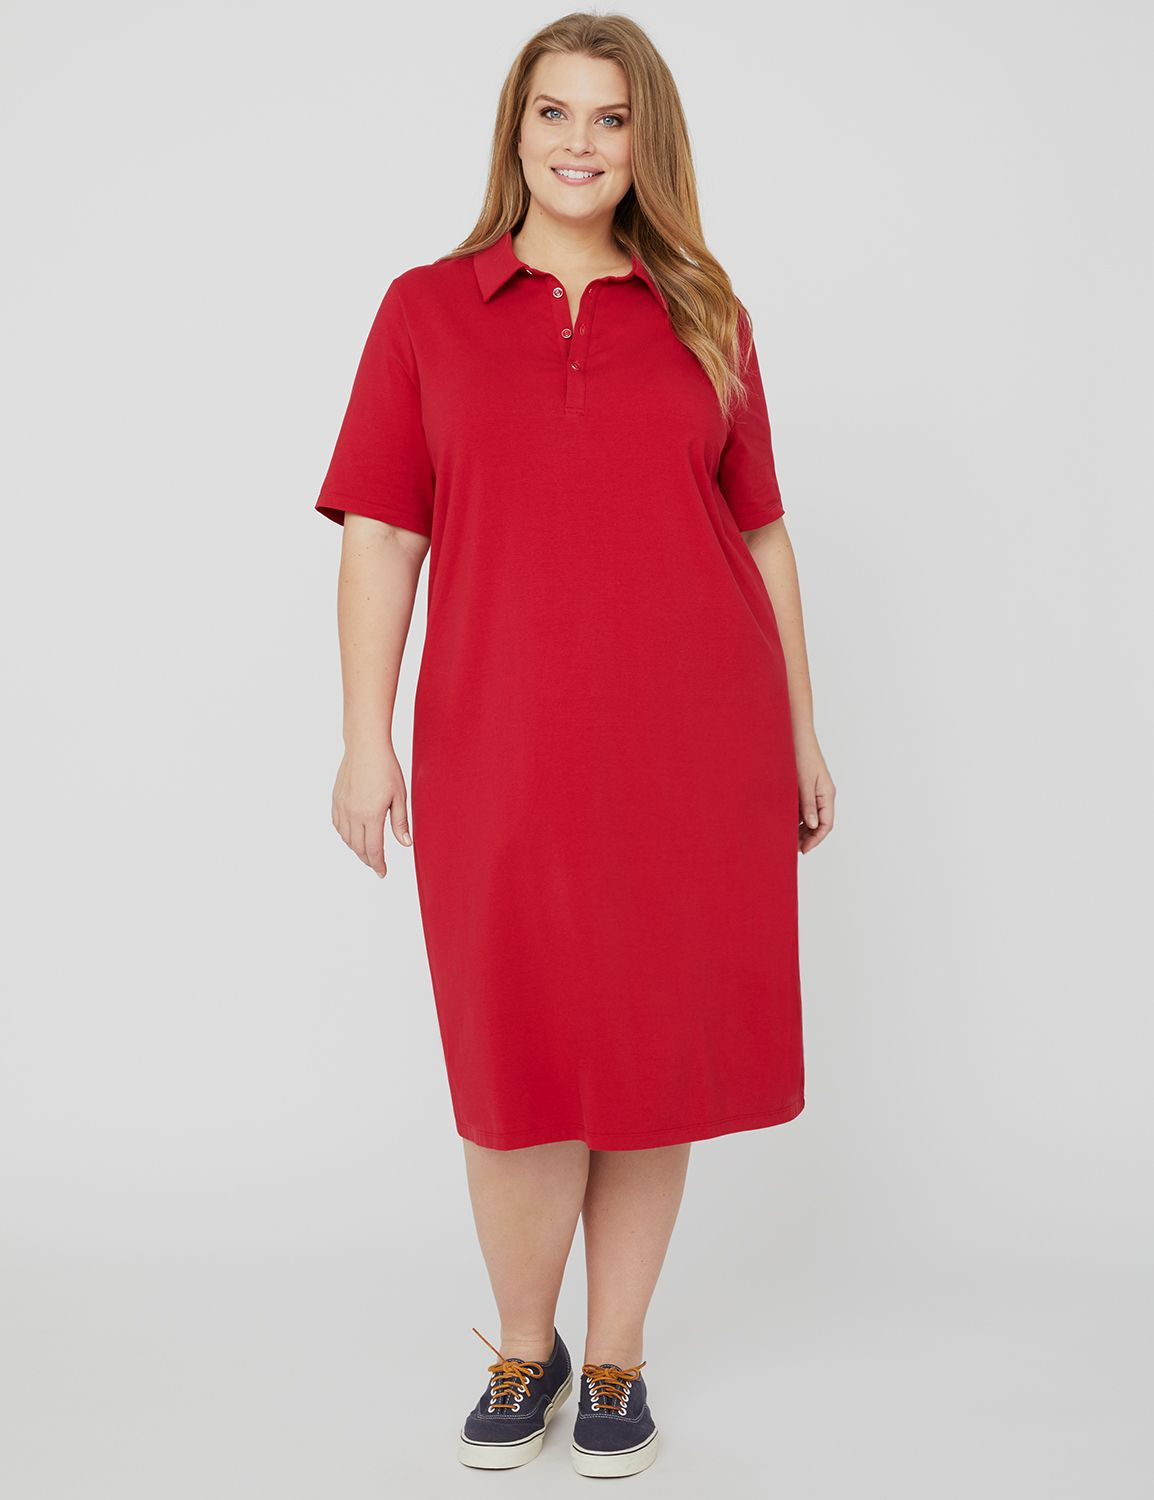 Suprema Polo Dress 1090899 Suprema Polo Dress MP-300105855